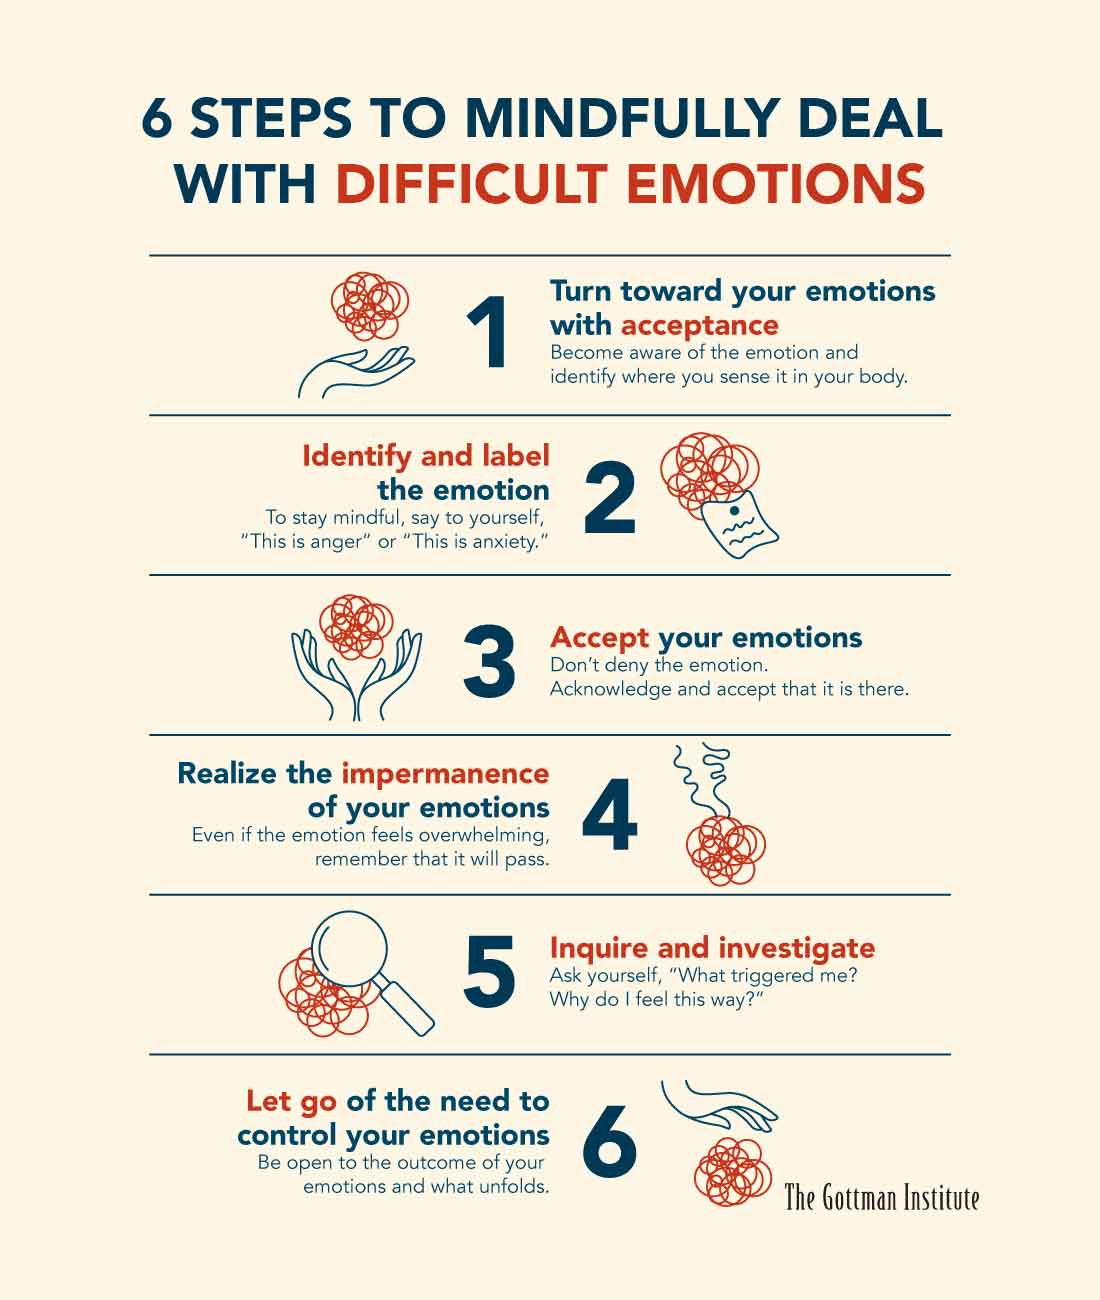 6 Steps To Mindfully Deal With Difficult Emotions